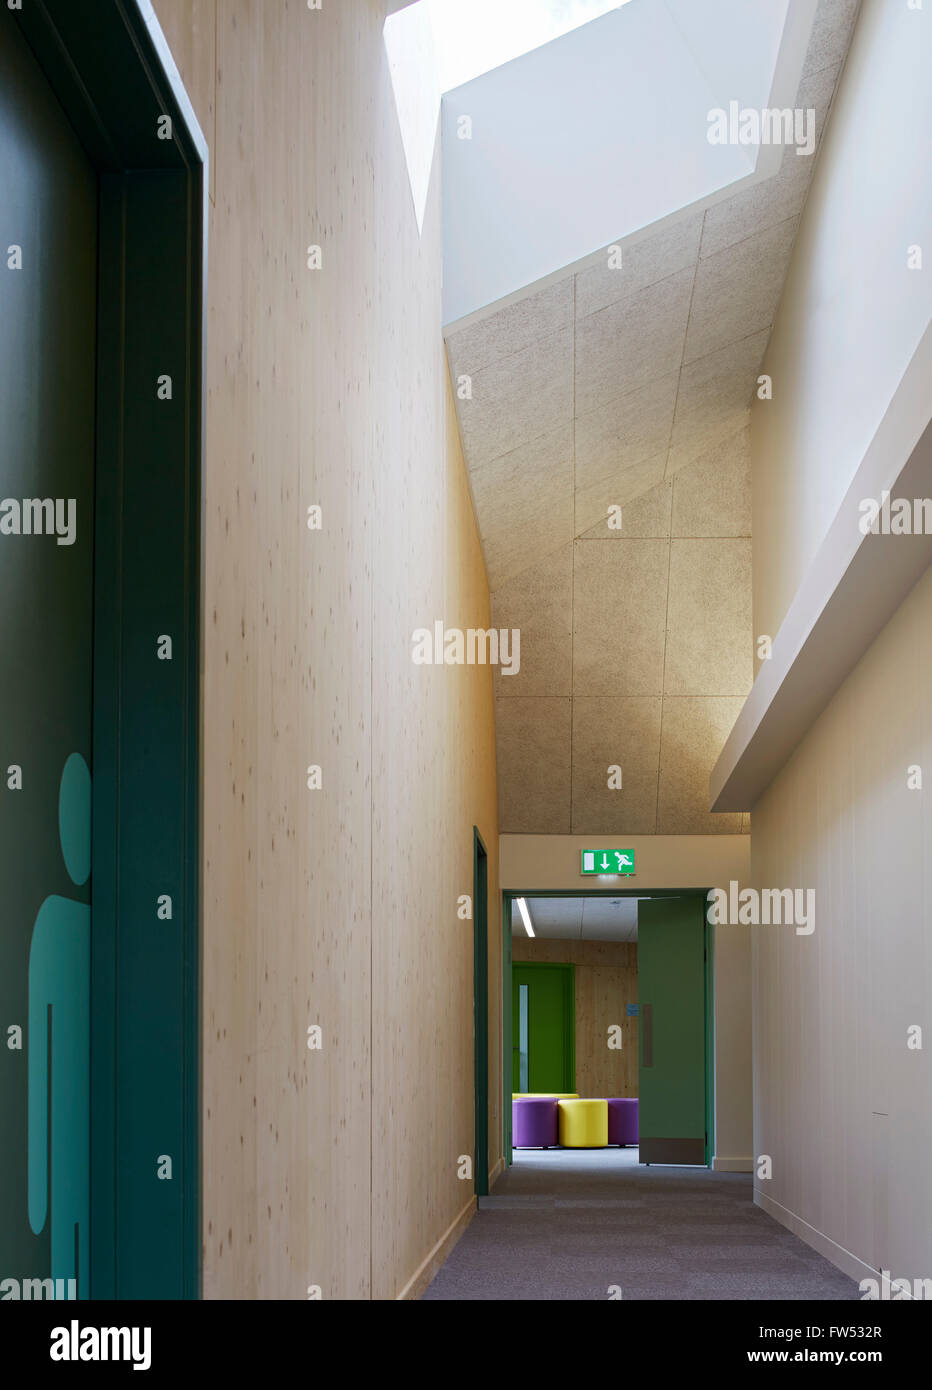 Corridor with skylight leading to breakout space. Davenies School, Beaconsfield, United Kingdom. Architect: DSDHA, - Stock Image